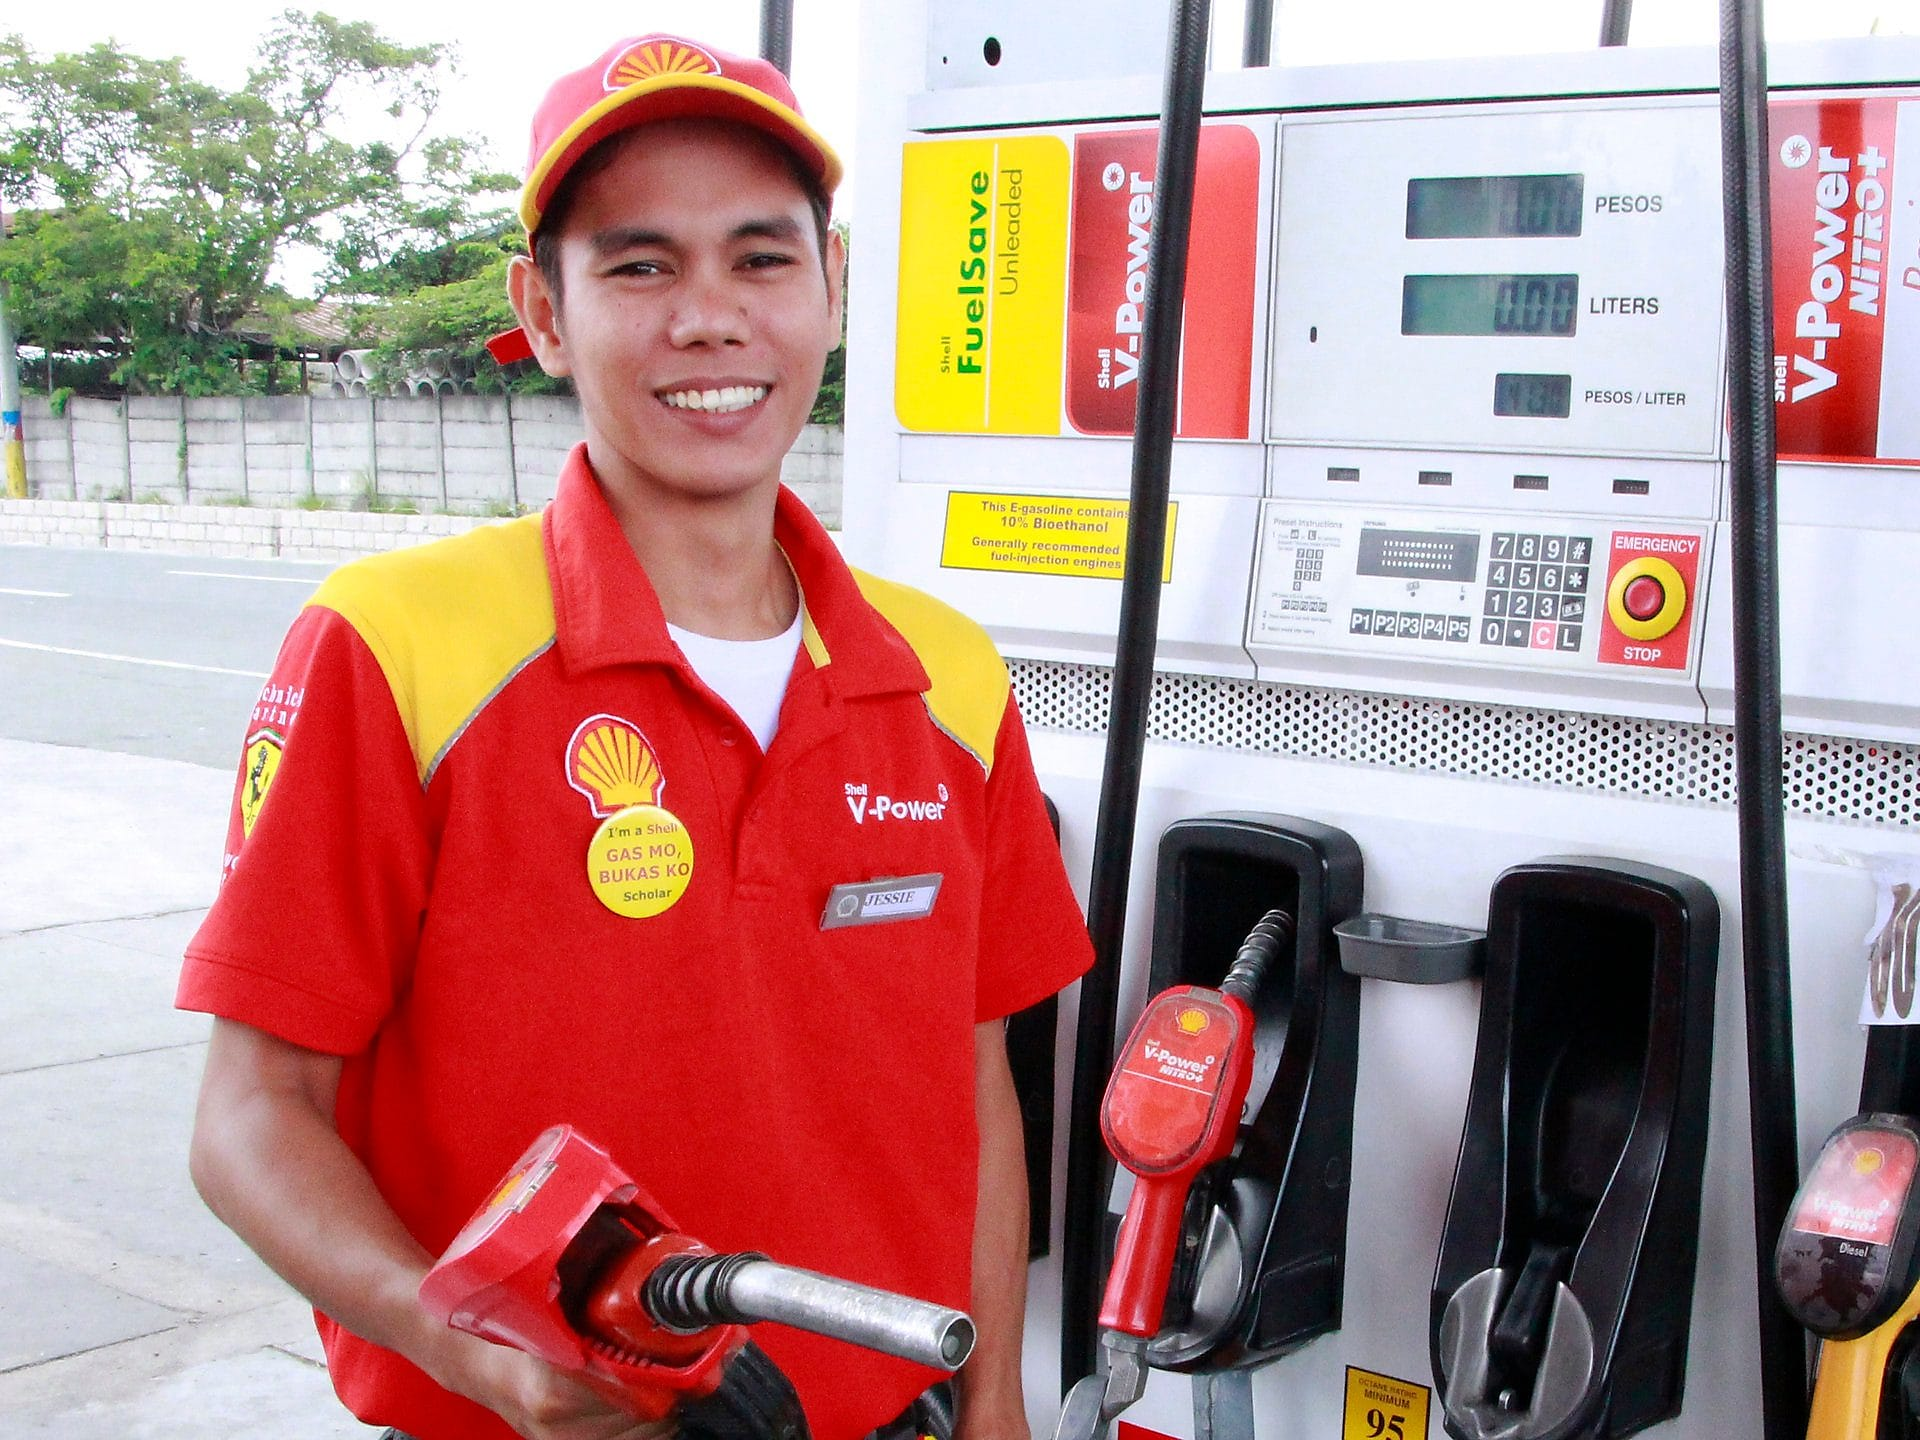 Employee on fuel station